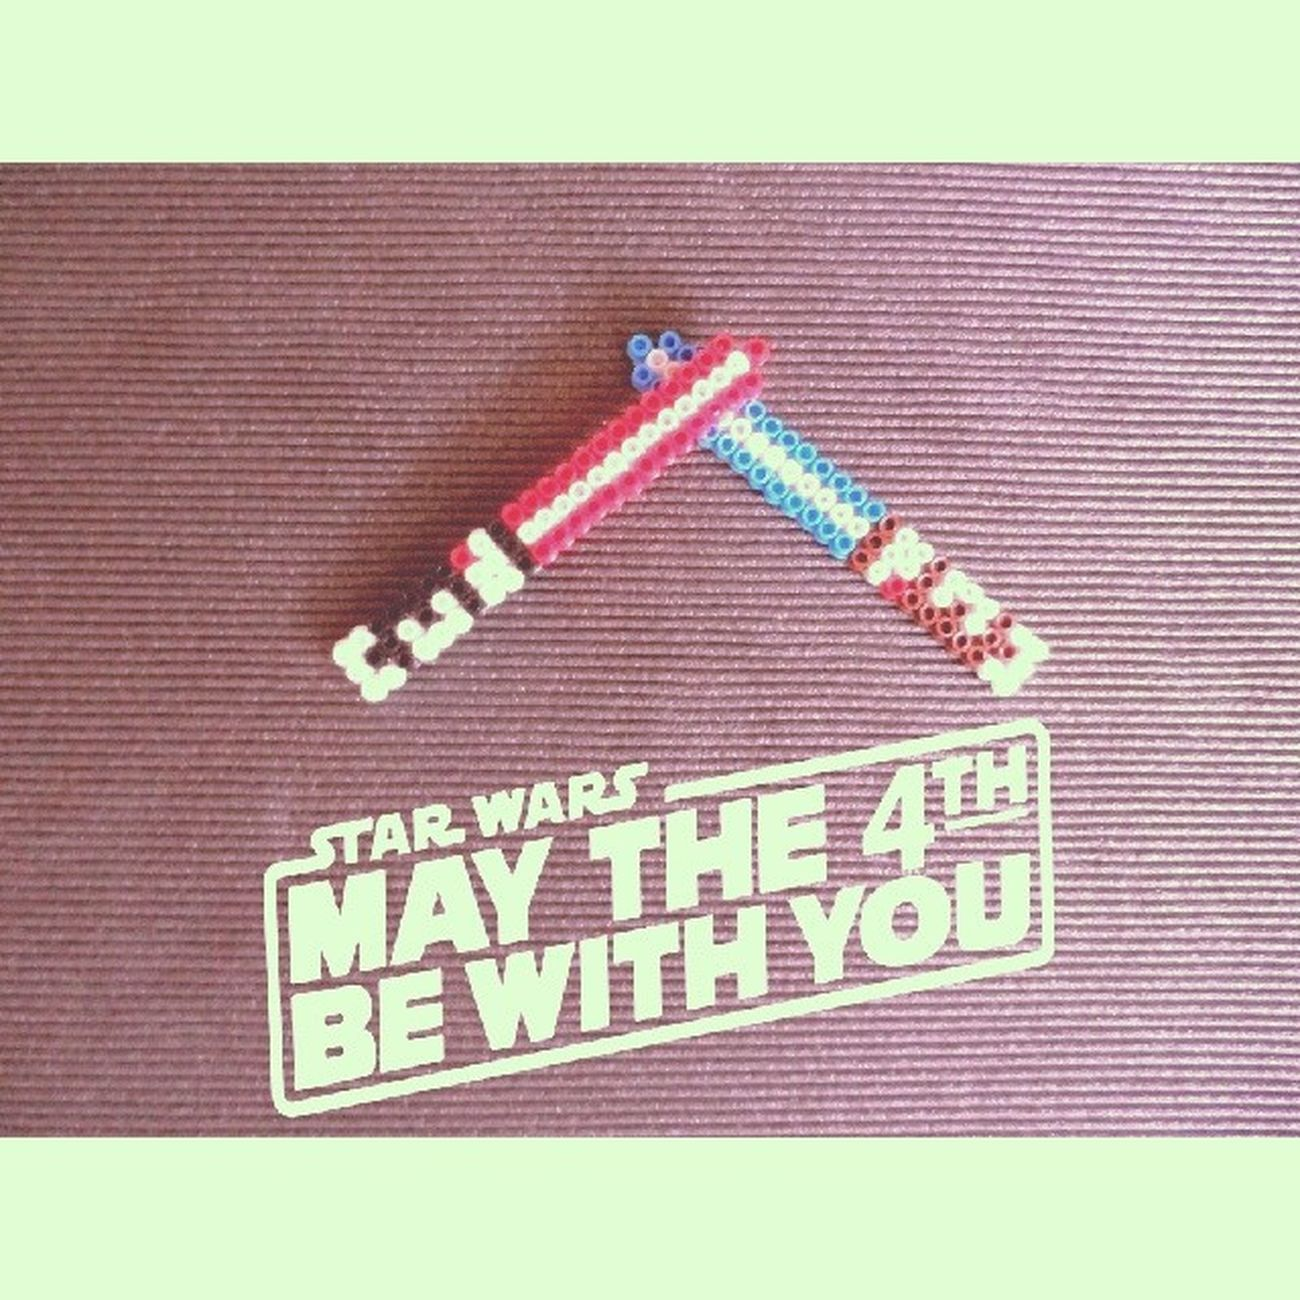 I made Pixel Art light sabers for the Star Wars Day !! May the 4th be with you folks ! Starwars Starwarsday MayTheFourthBeWithYou Jedi Geek Universe Happy Lightsaber Force Design Pixelart Art Pixel Eightbit Hama Today Pictoftheday Project